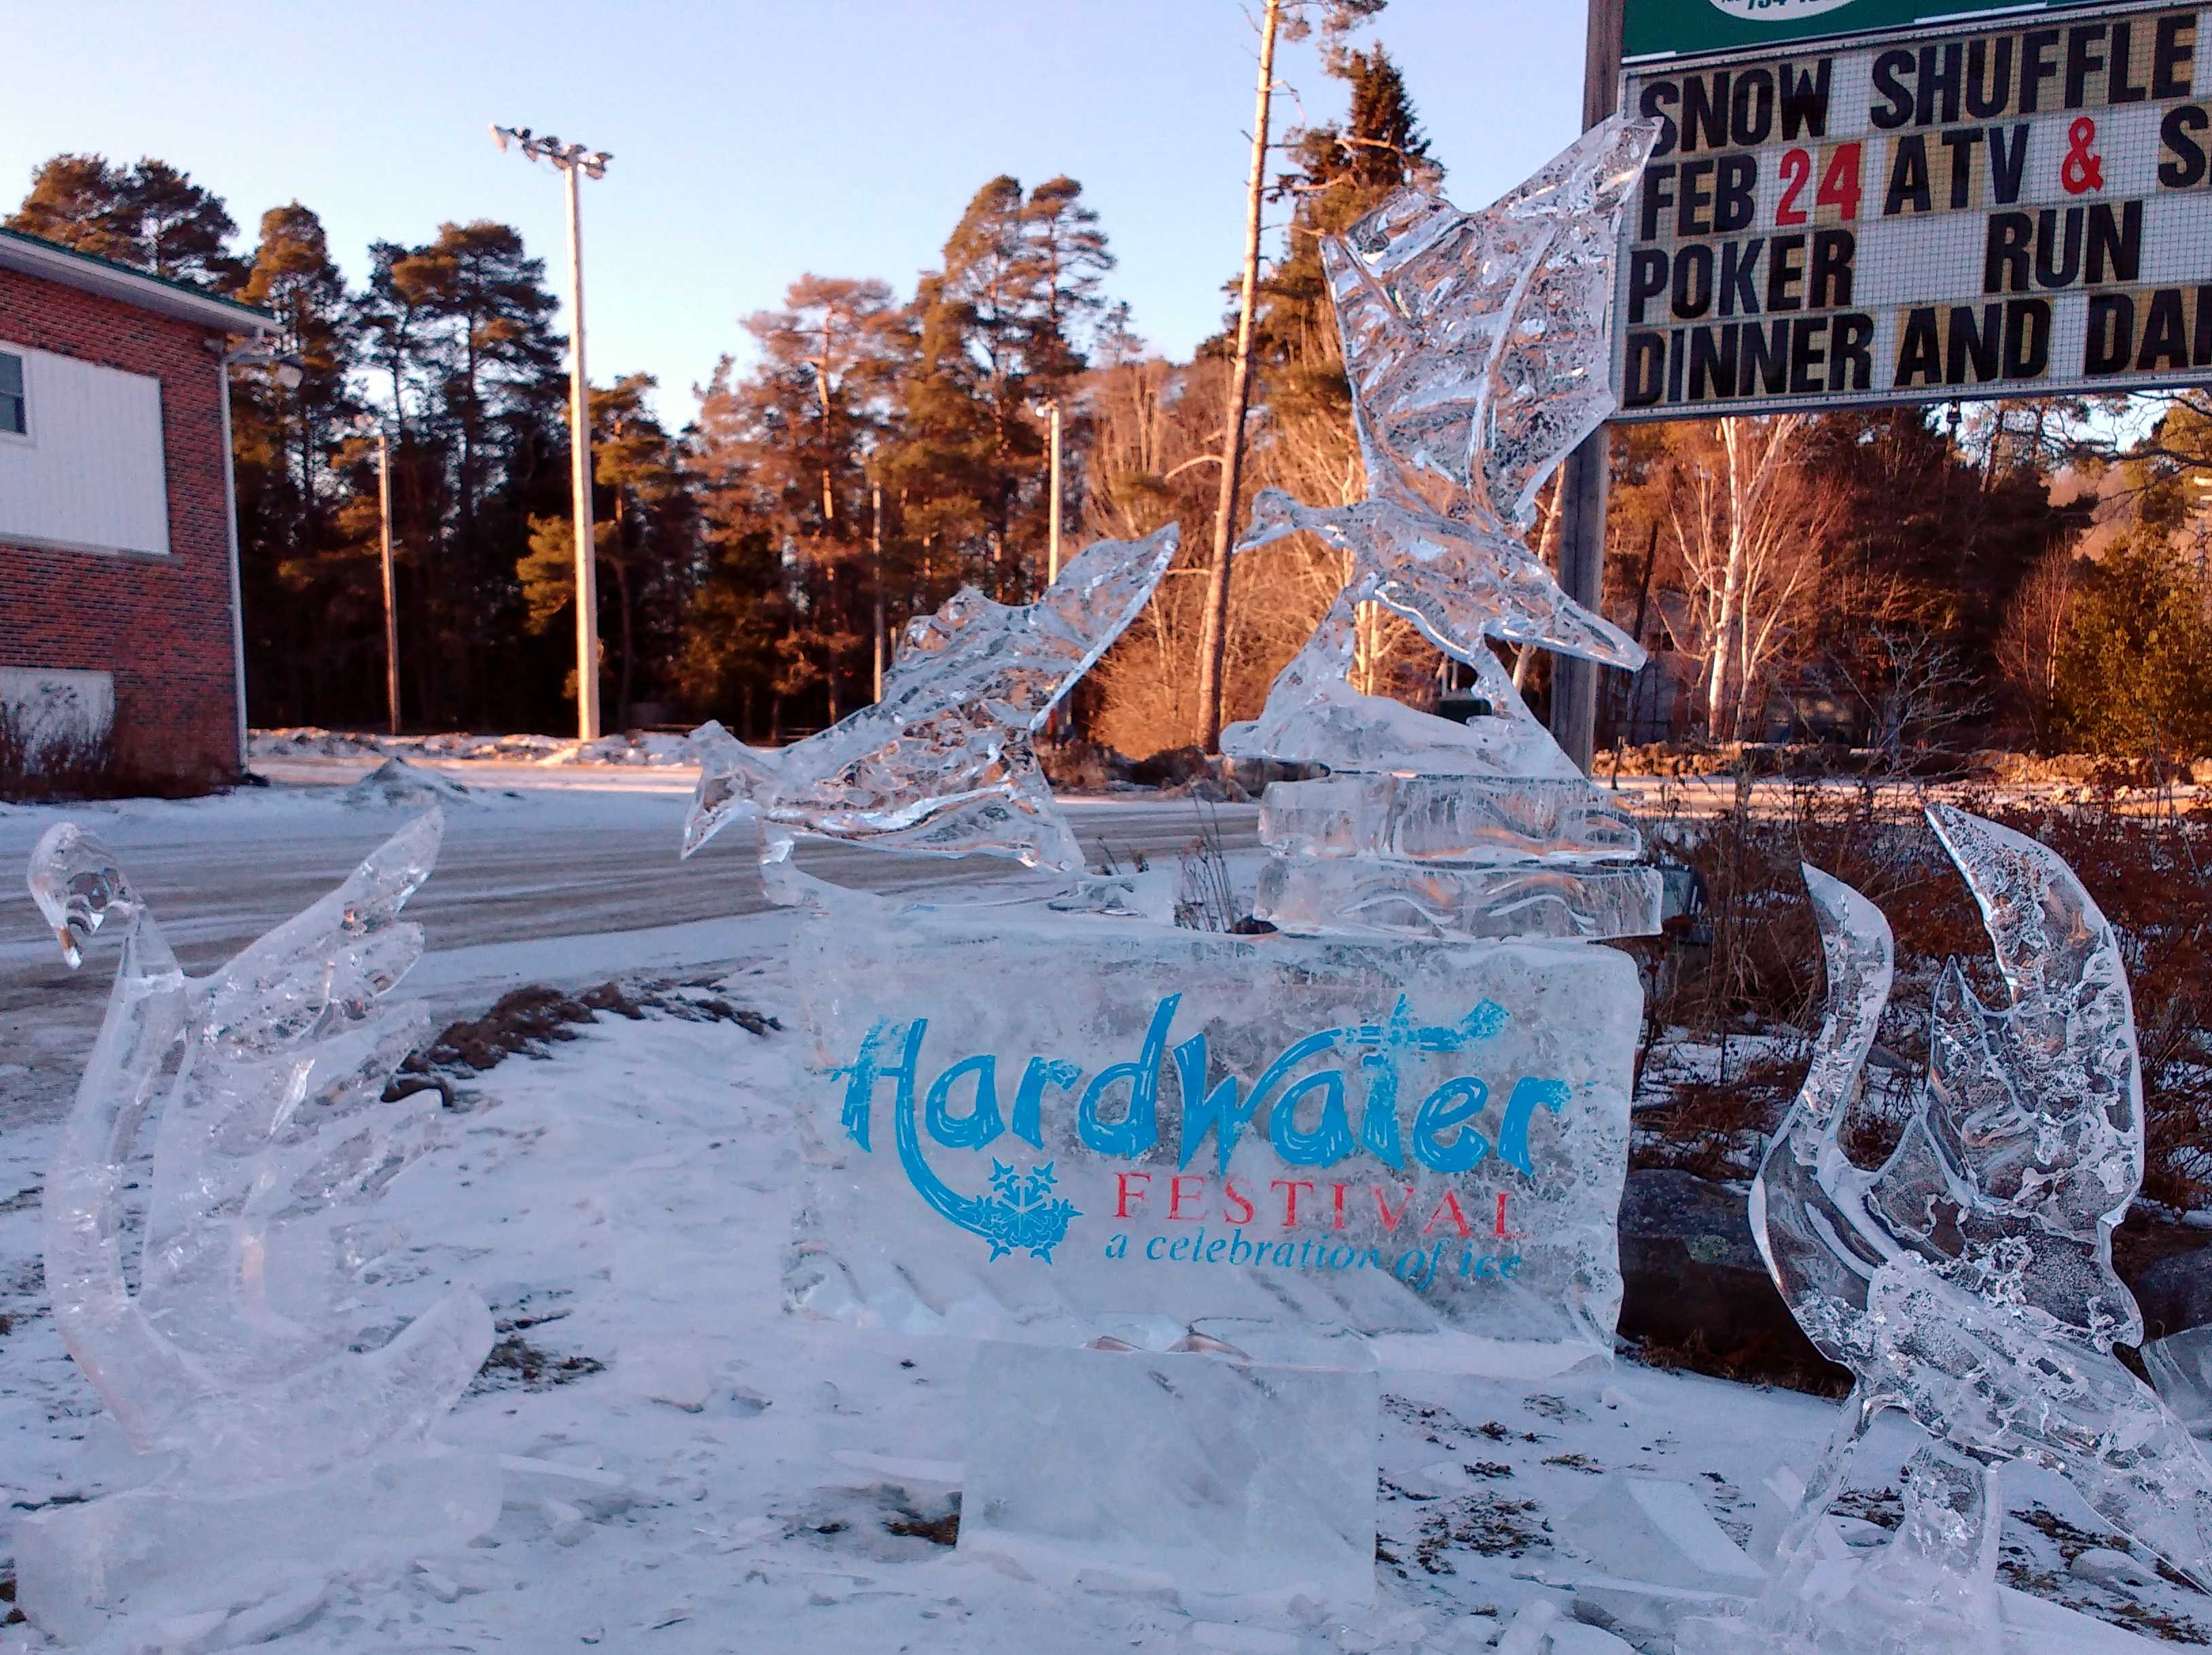 Canoe FM listener, Margo Ross shared her photo of the ice carving sculpture at West Guilford at the Hardwater Festival 2018